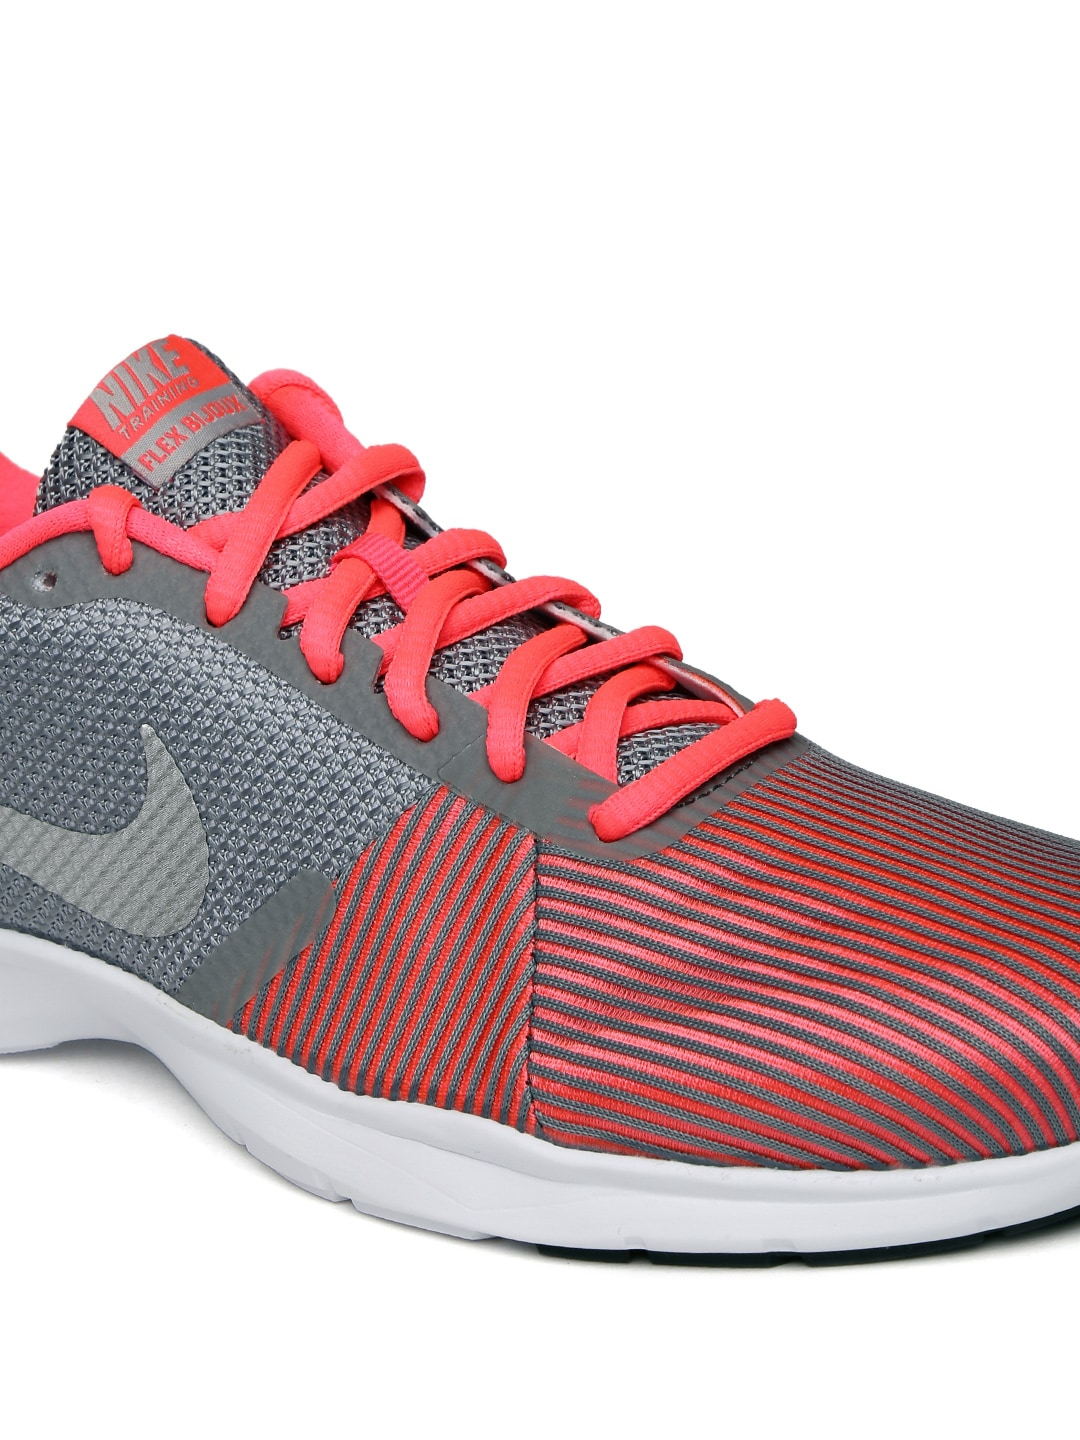 25 model nike tennis shoes women neon � playzoacom